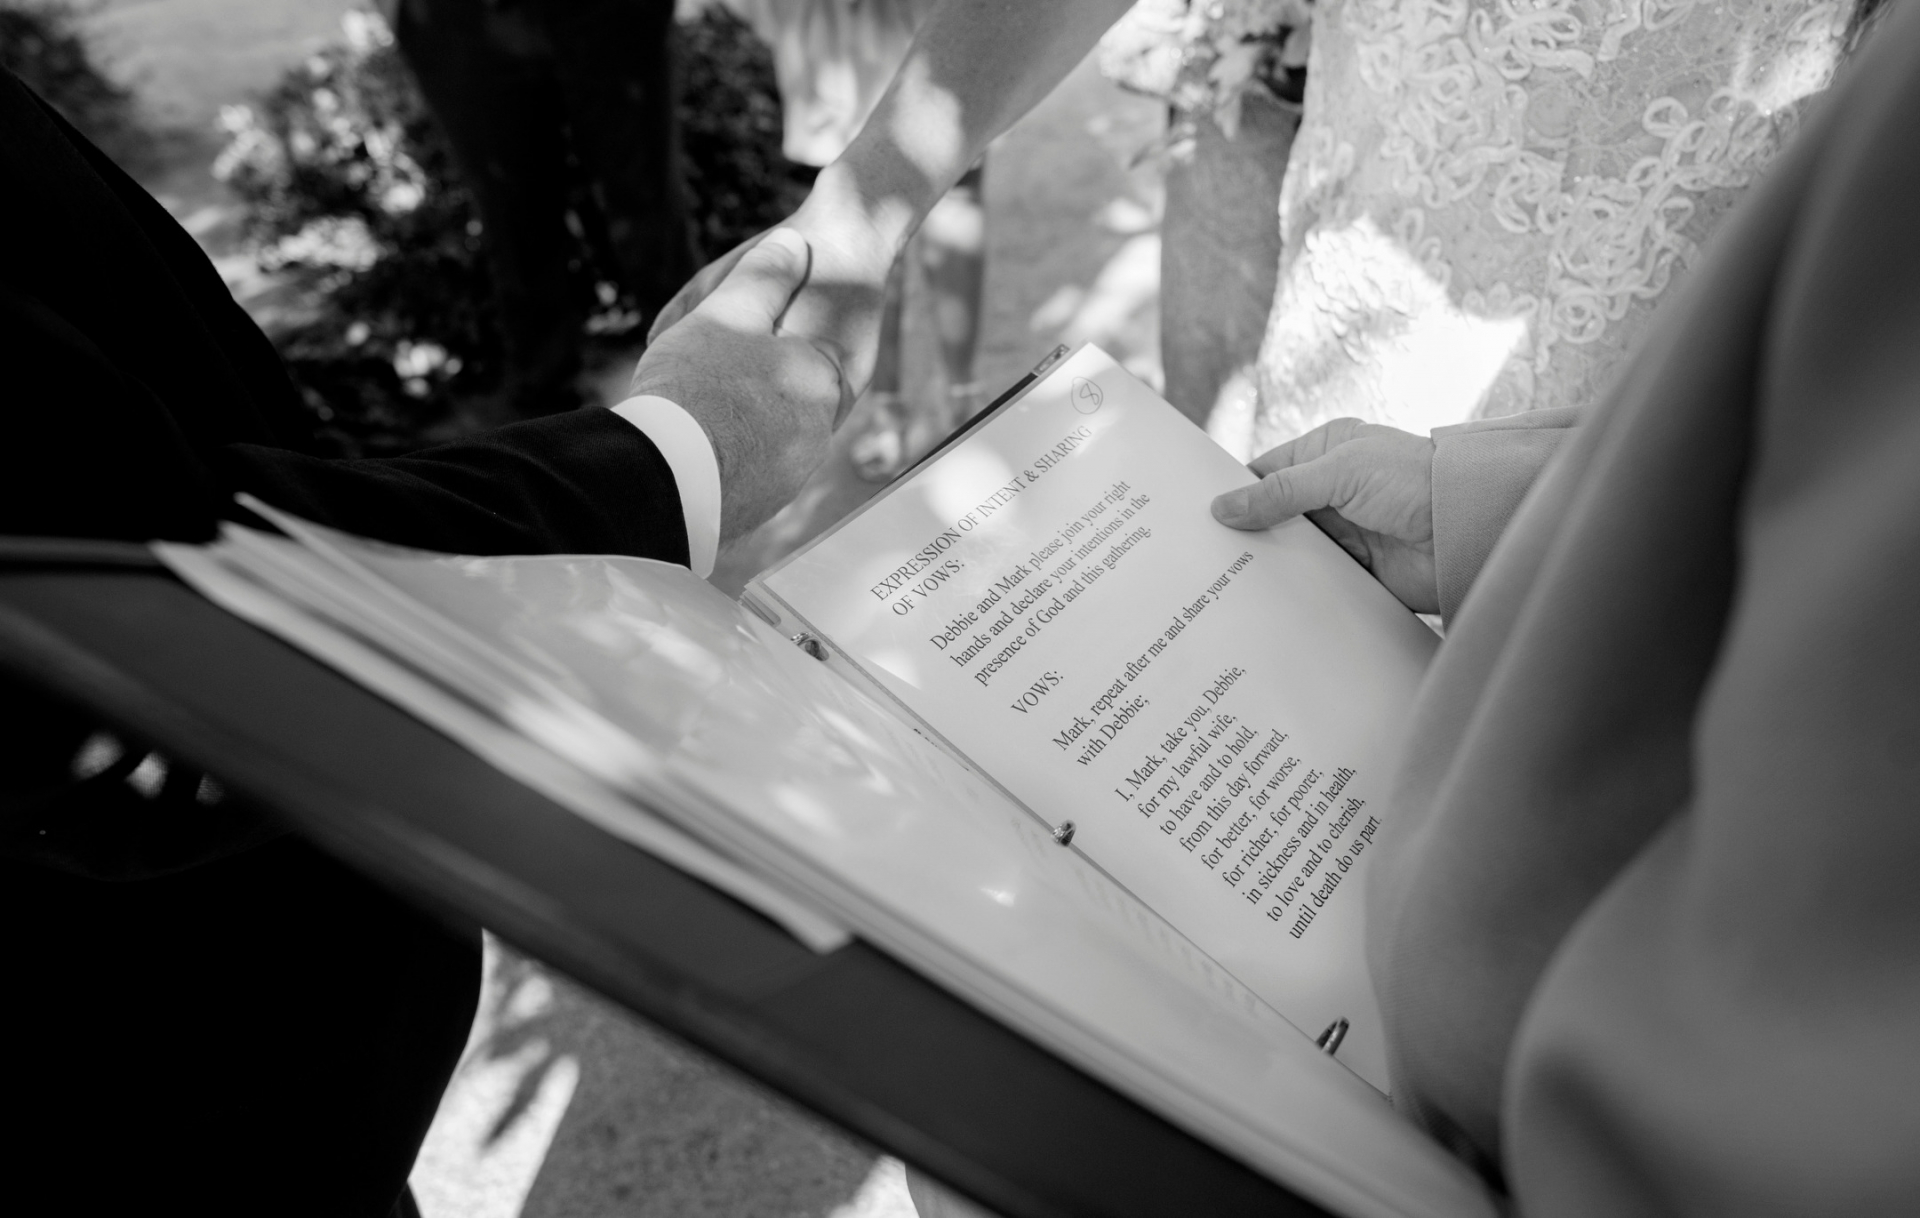 Japanese Friendship Garden Elopement Detail Image | We can see the officiant reading the vows as the bride and groom hold hands in front of the officiant's pages